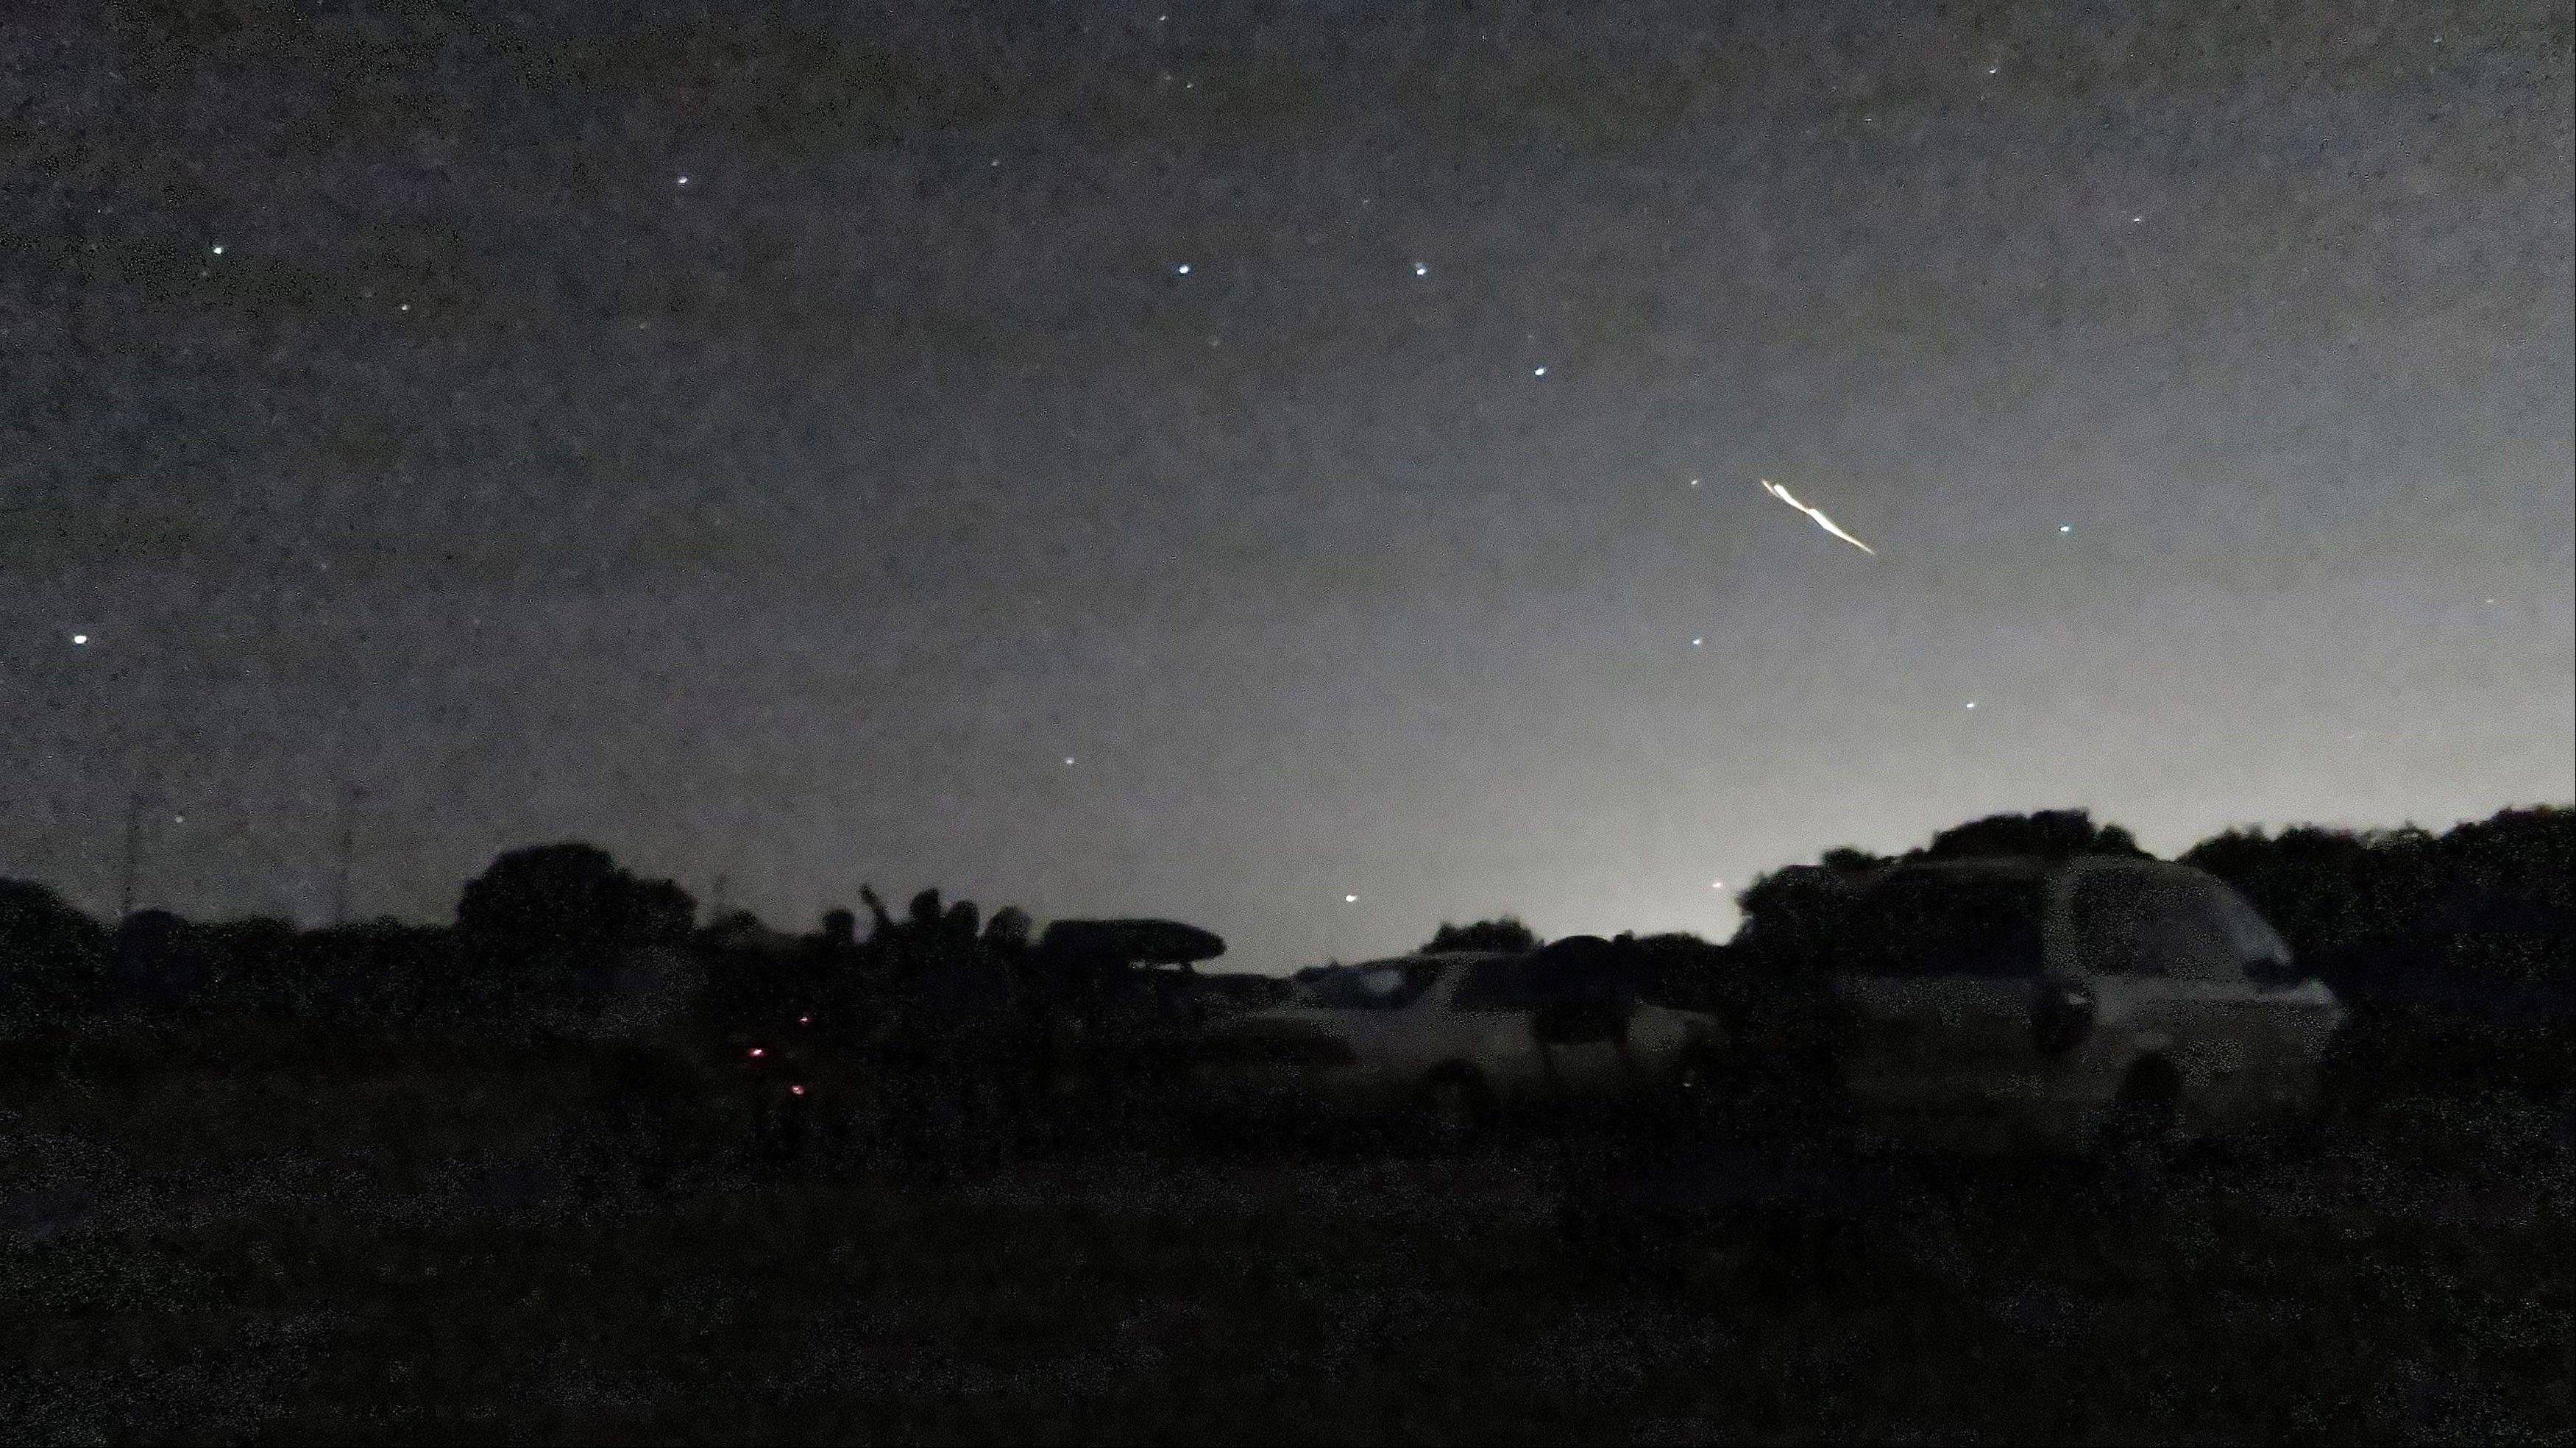 A shooting star is seen above the Montebello Open Space Preserve in Palo Alto, Calif. Streaking fireballs lighting up California skies and stunning stargazers are part of a major meteor shower, and the show is just getting started, professional observers said.